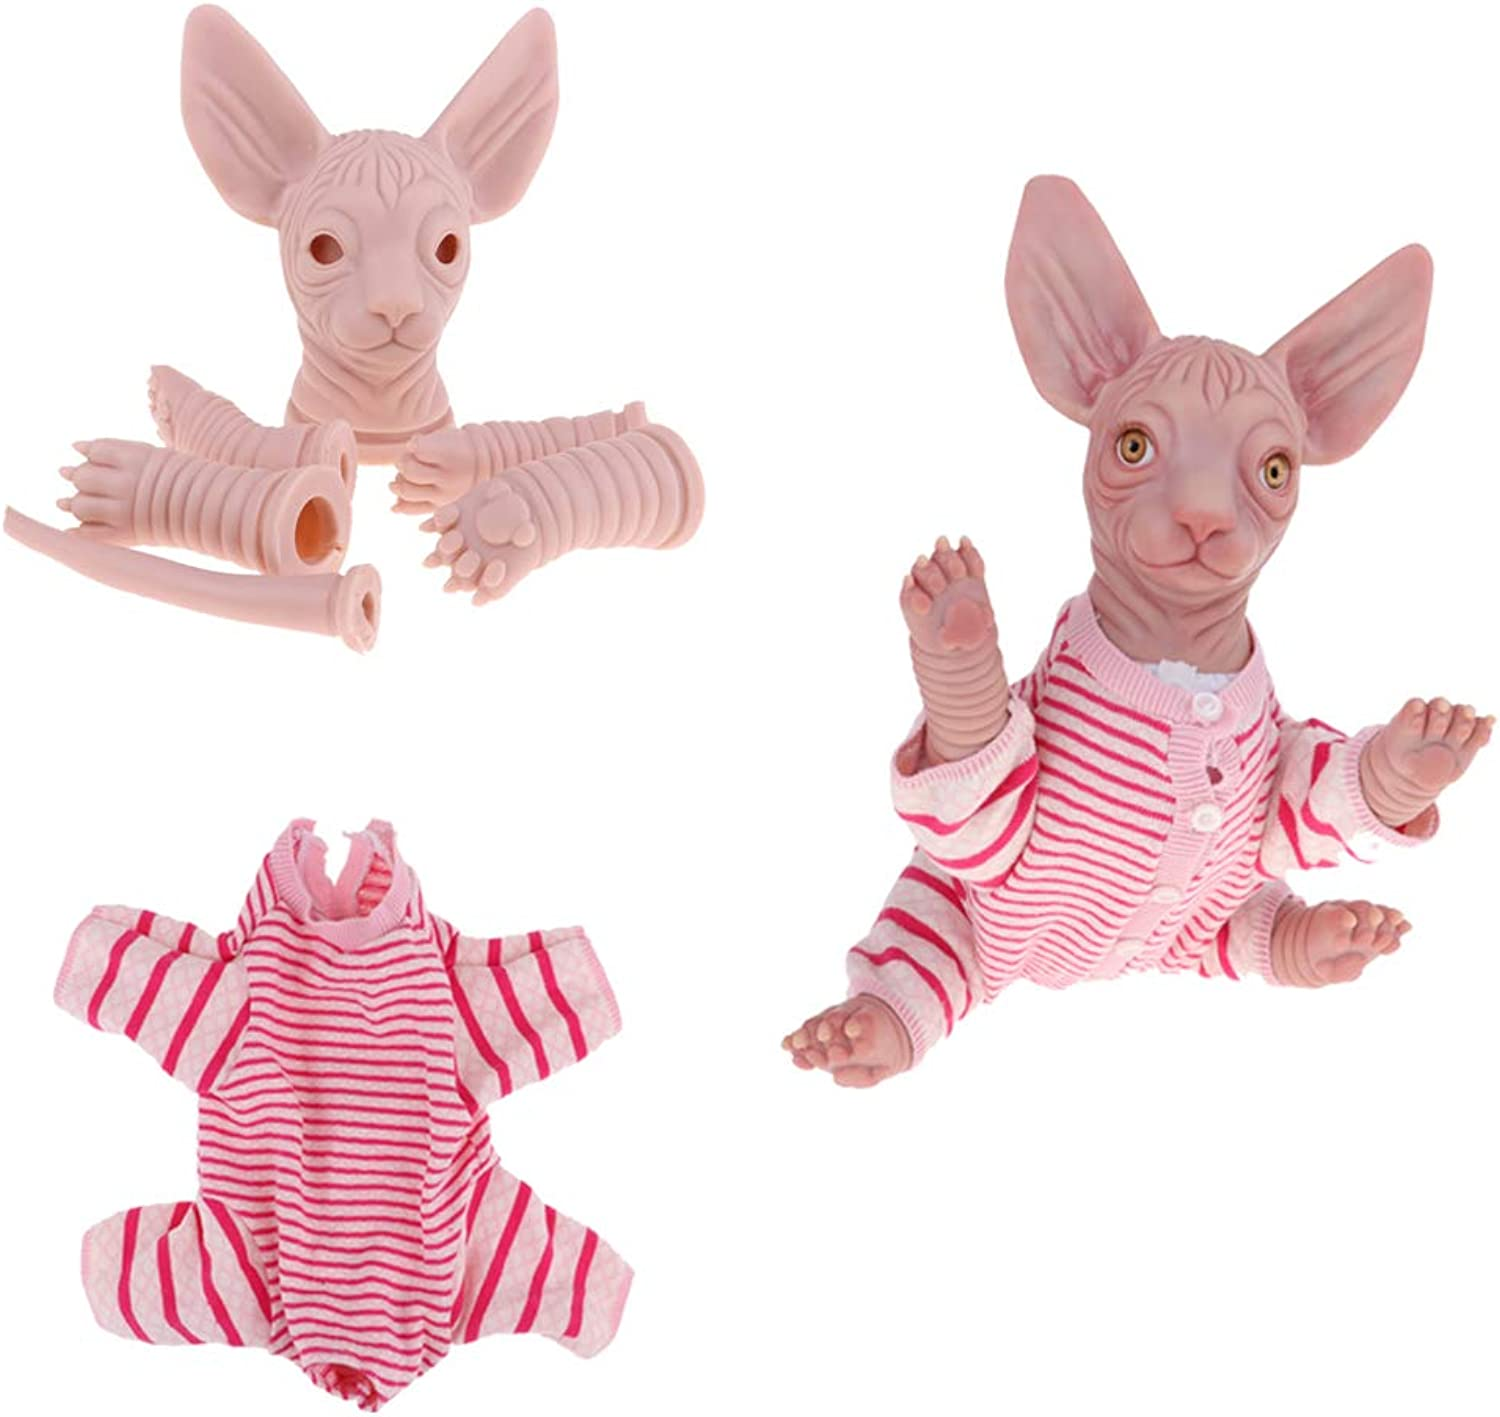 Fityle Unpainted 18inch Reborn Kits Silicone Vinyl Sphynx Cat & Striped Clothes – Real Life Canadian Hairless Cat Toy